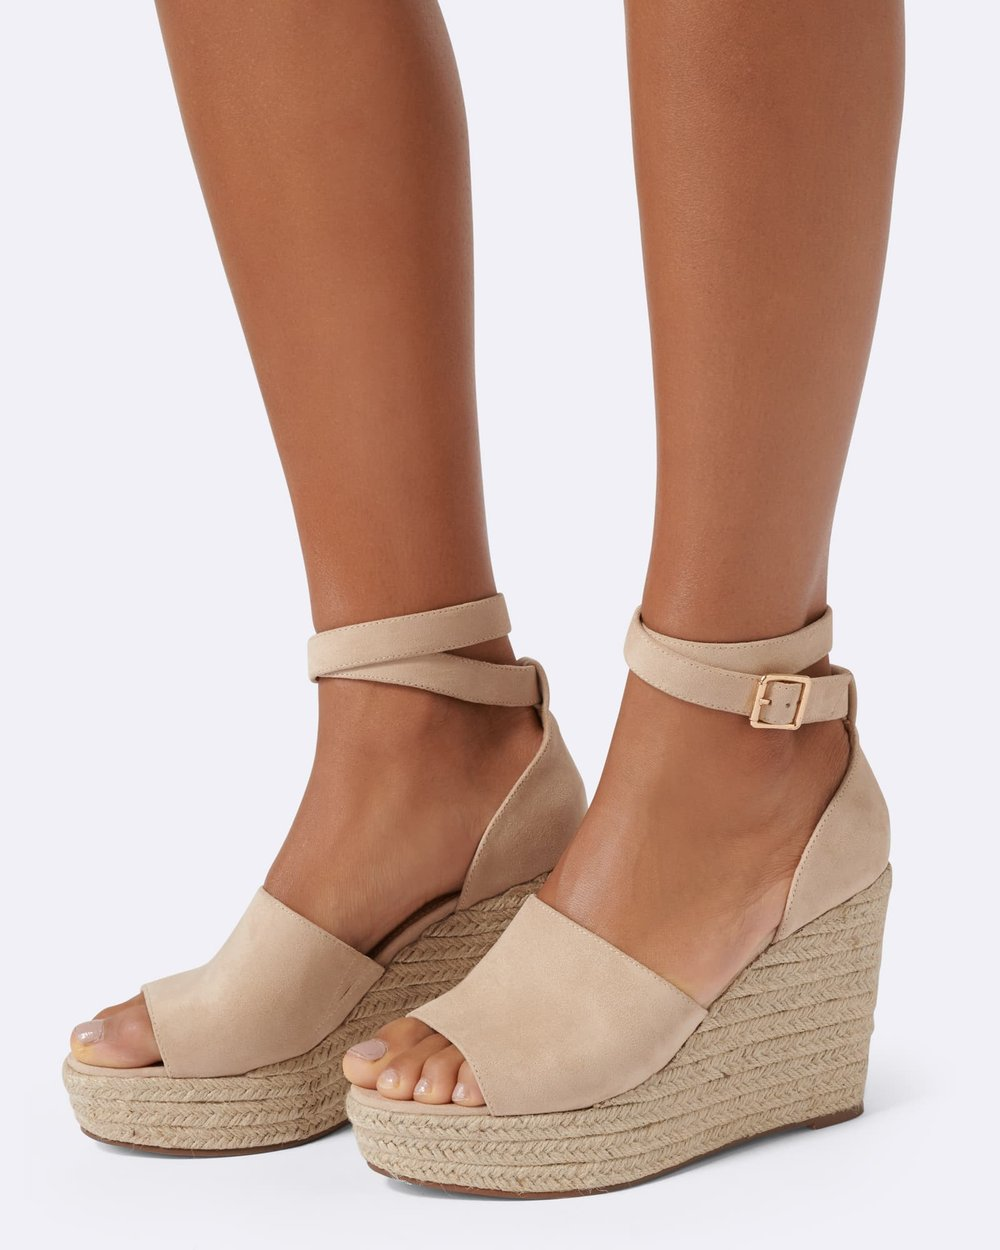 0d78df7394f Remy Espadrille Wedges by Forever New Online